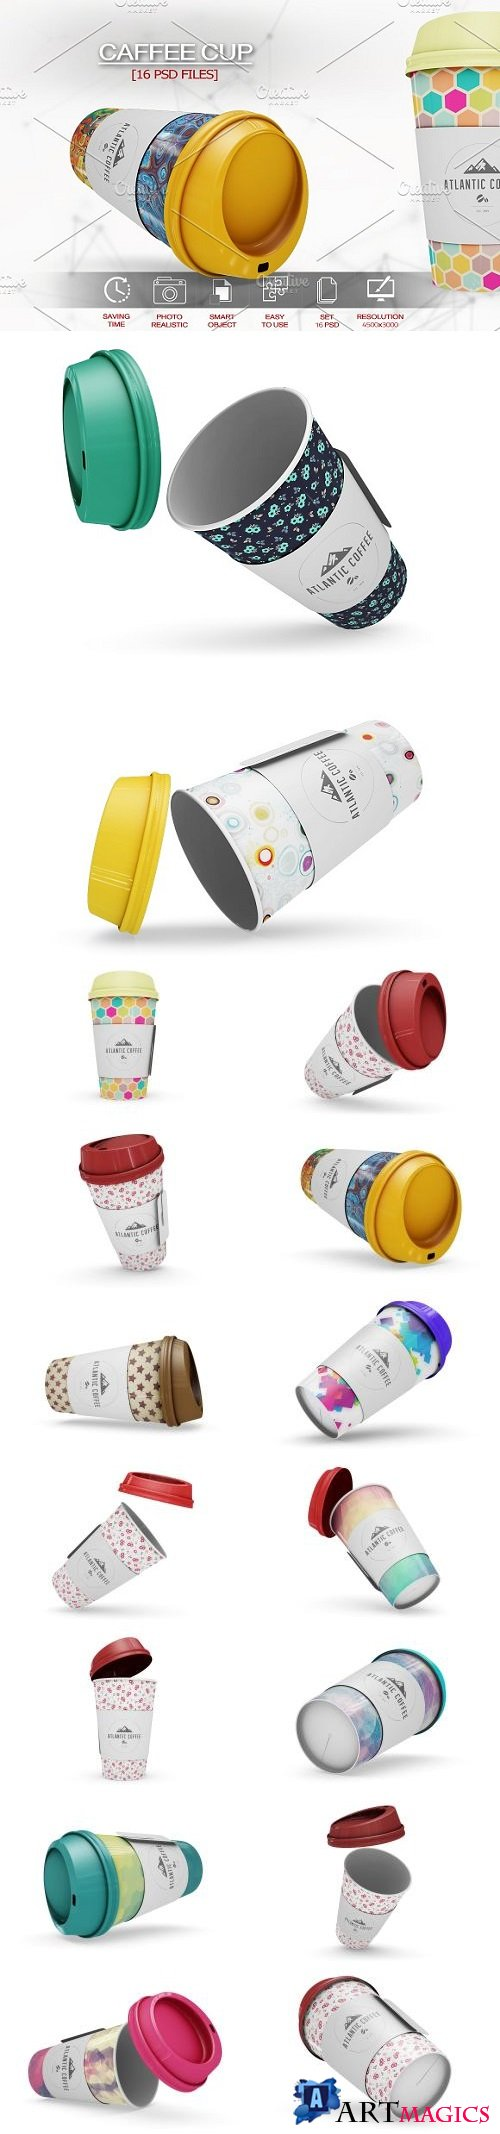 Coffee Cup Vol1 Mockup - 2108301